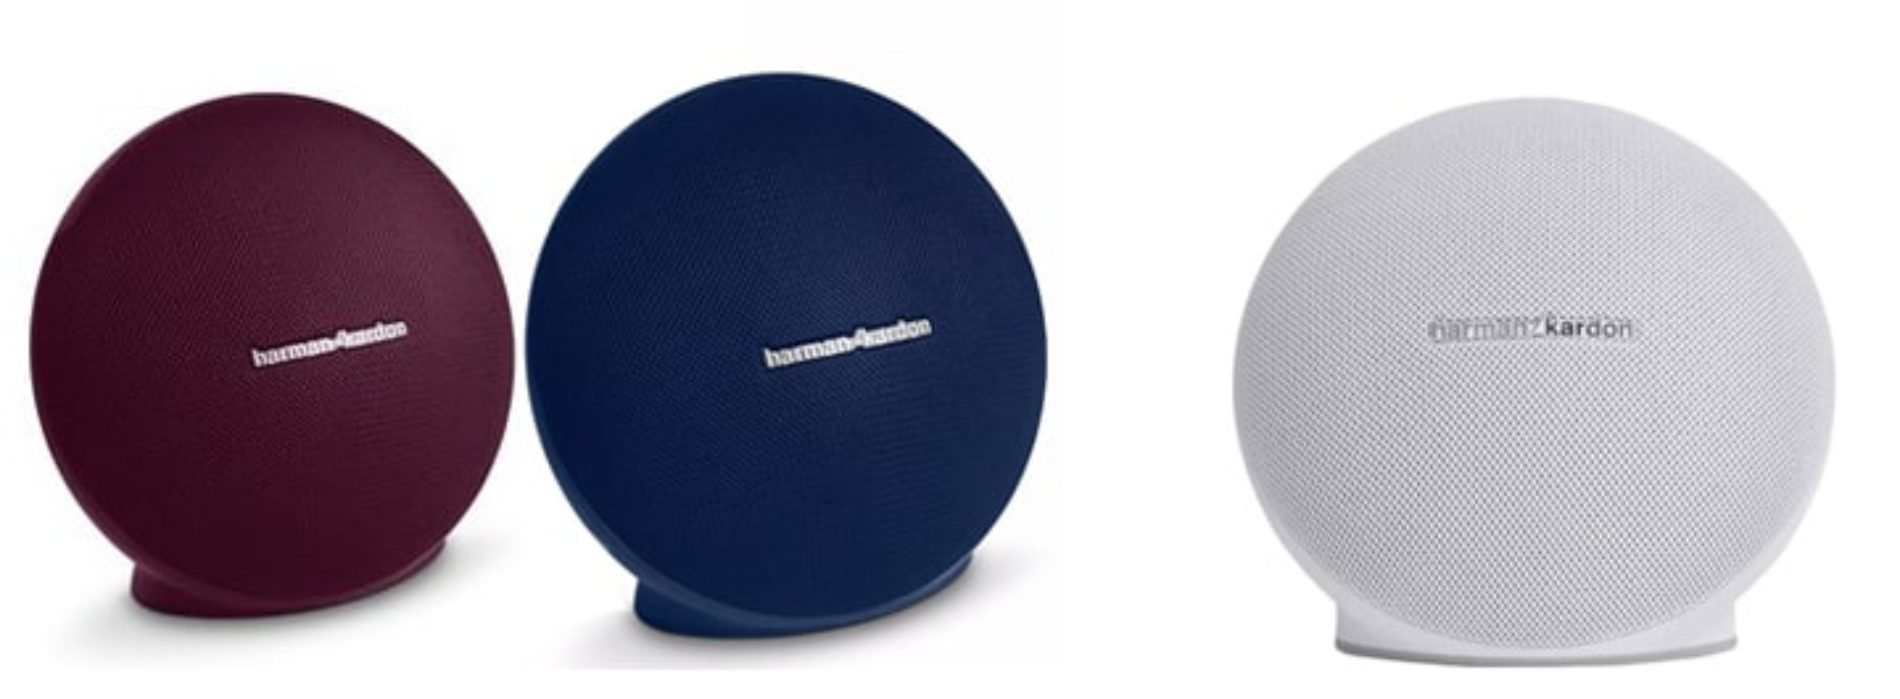 Ремонт Harman Kardon Onyx Mini